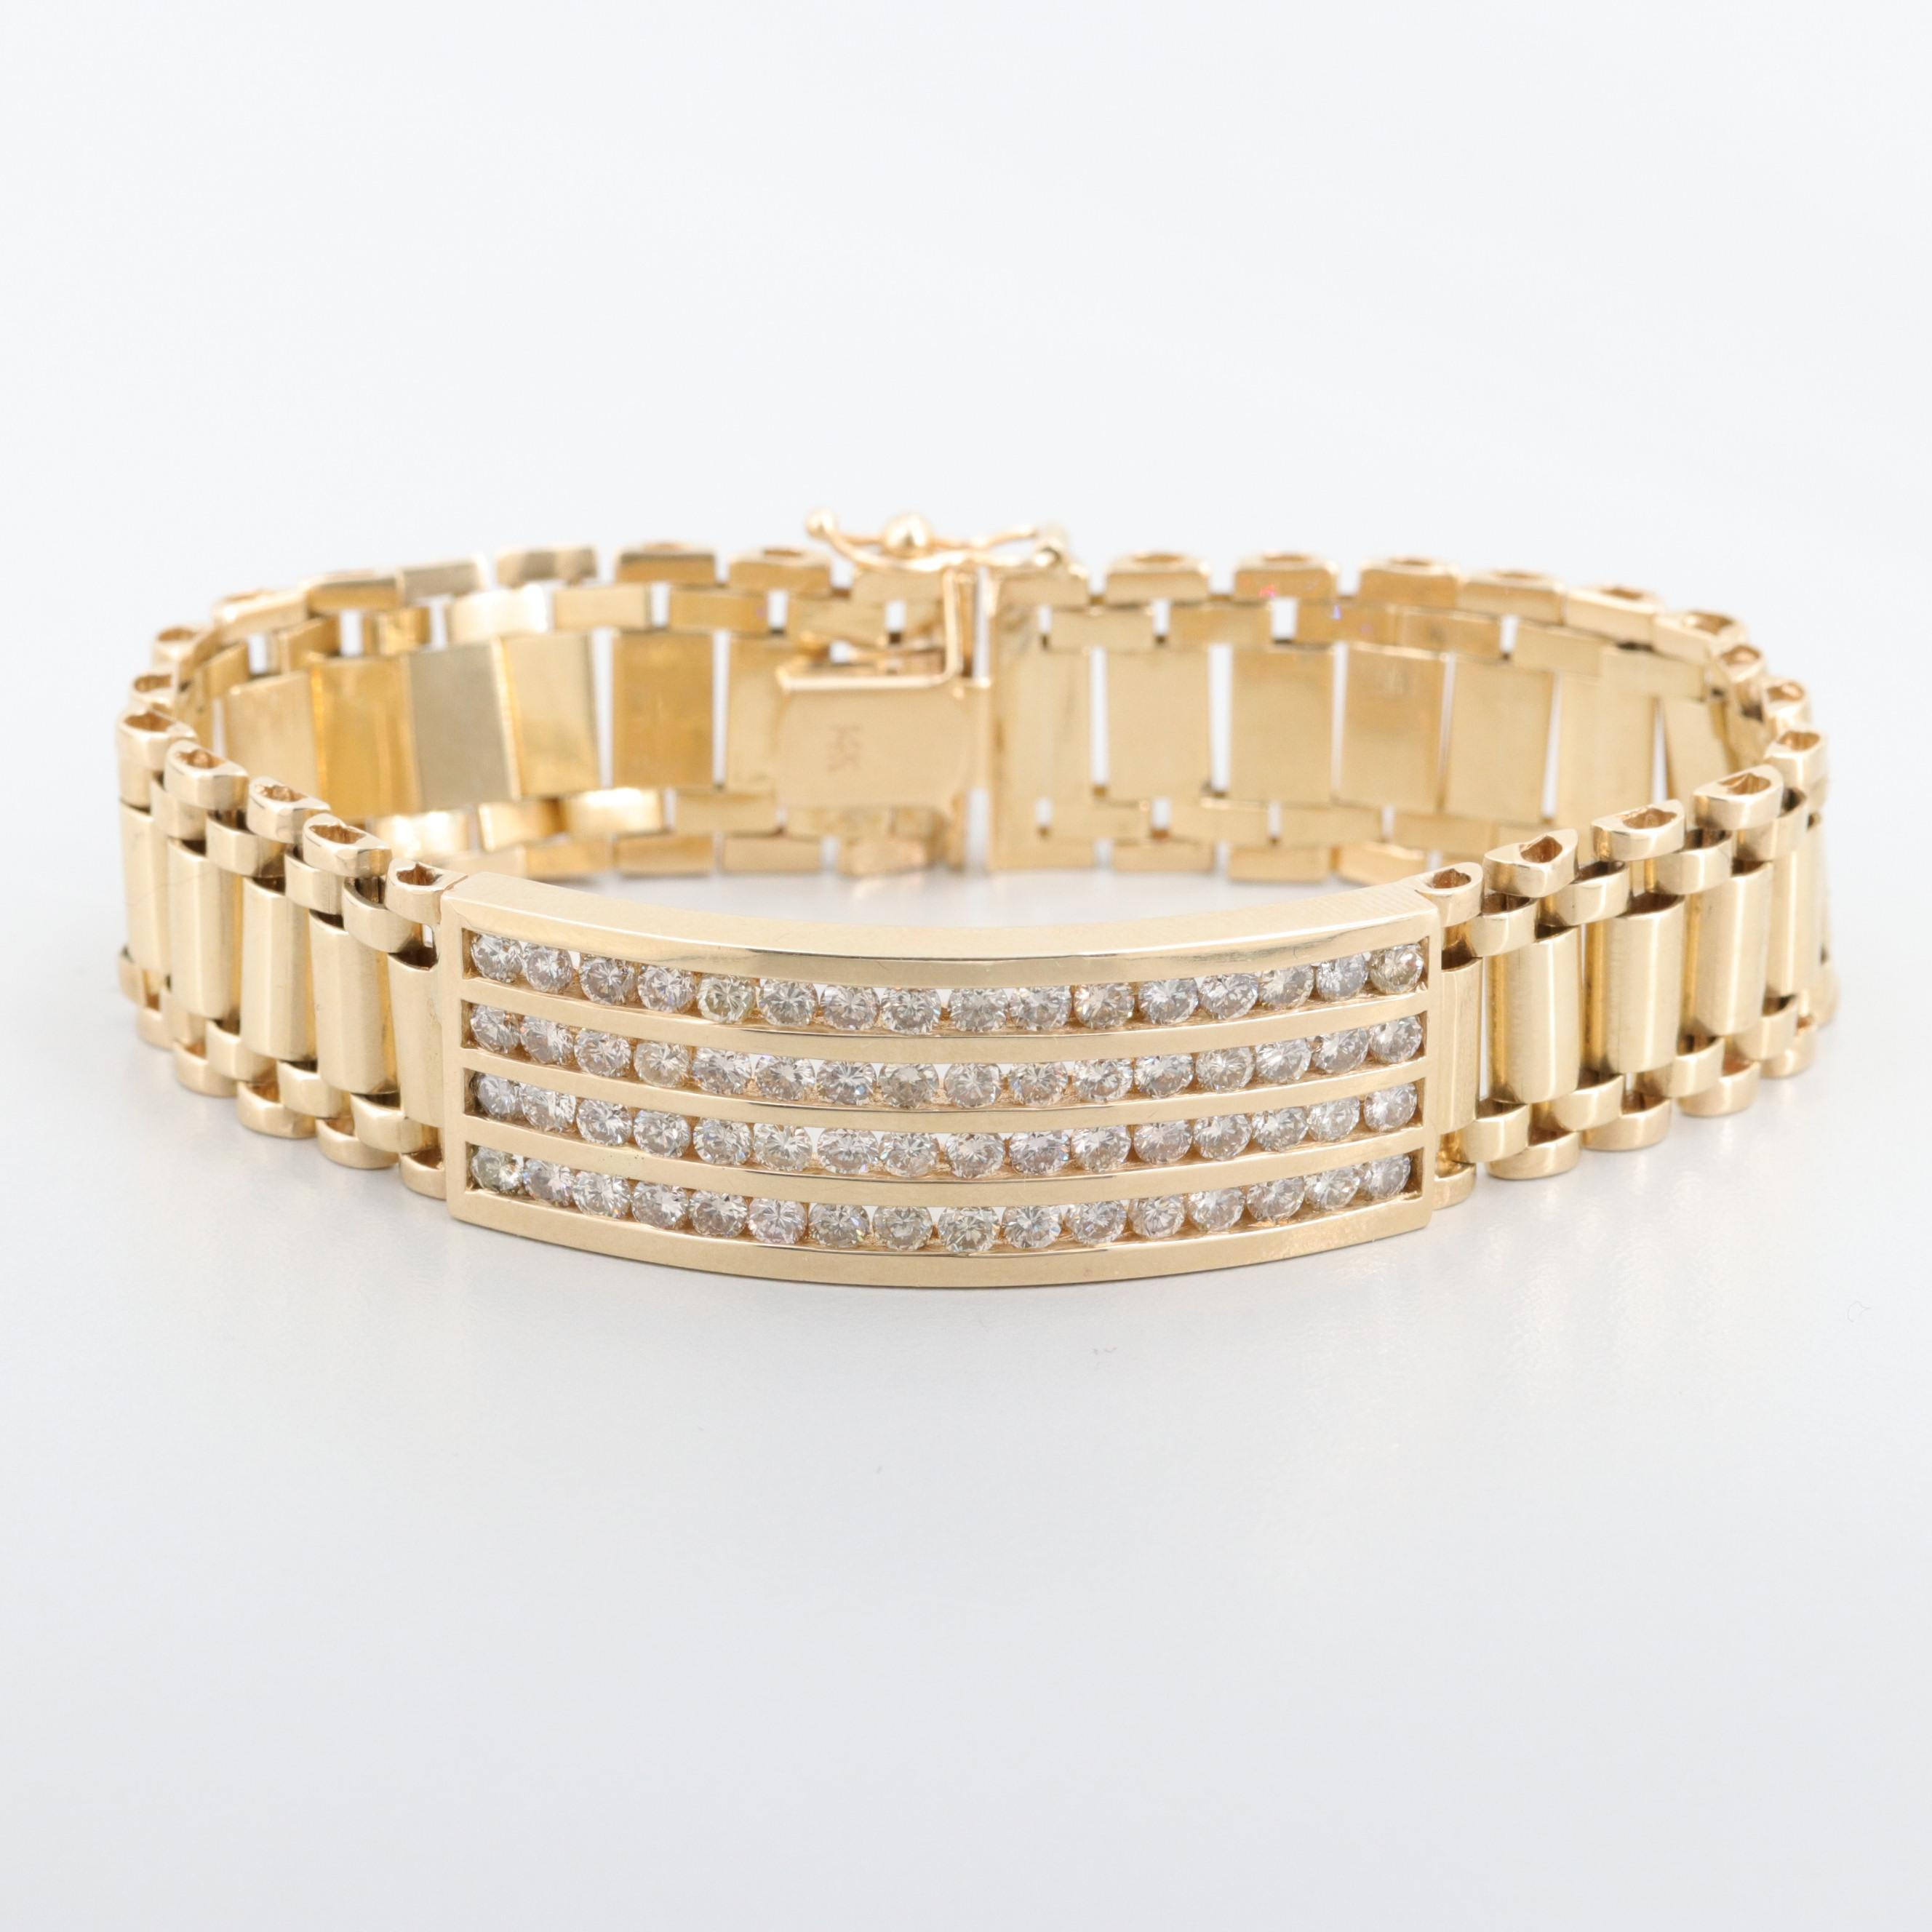 14K Yellow Gold 4.16 CTW Diamond Bracelet